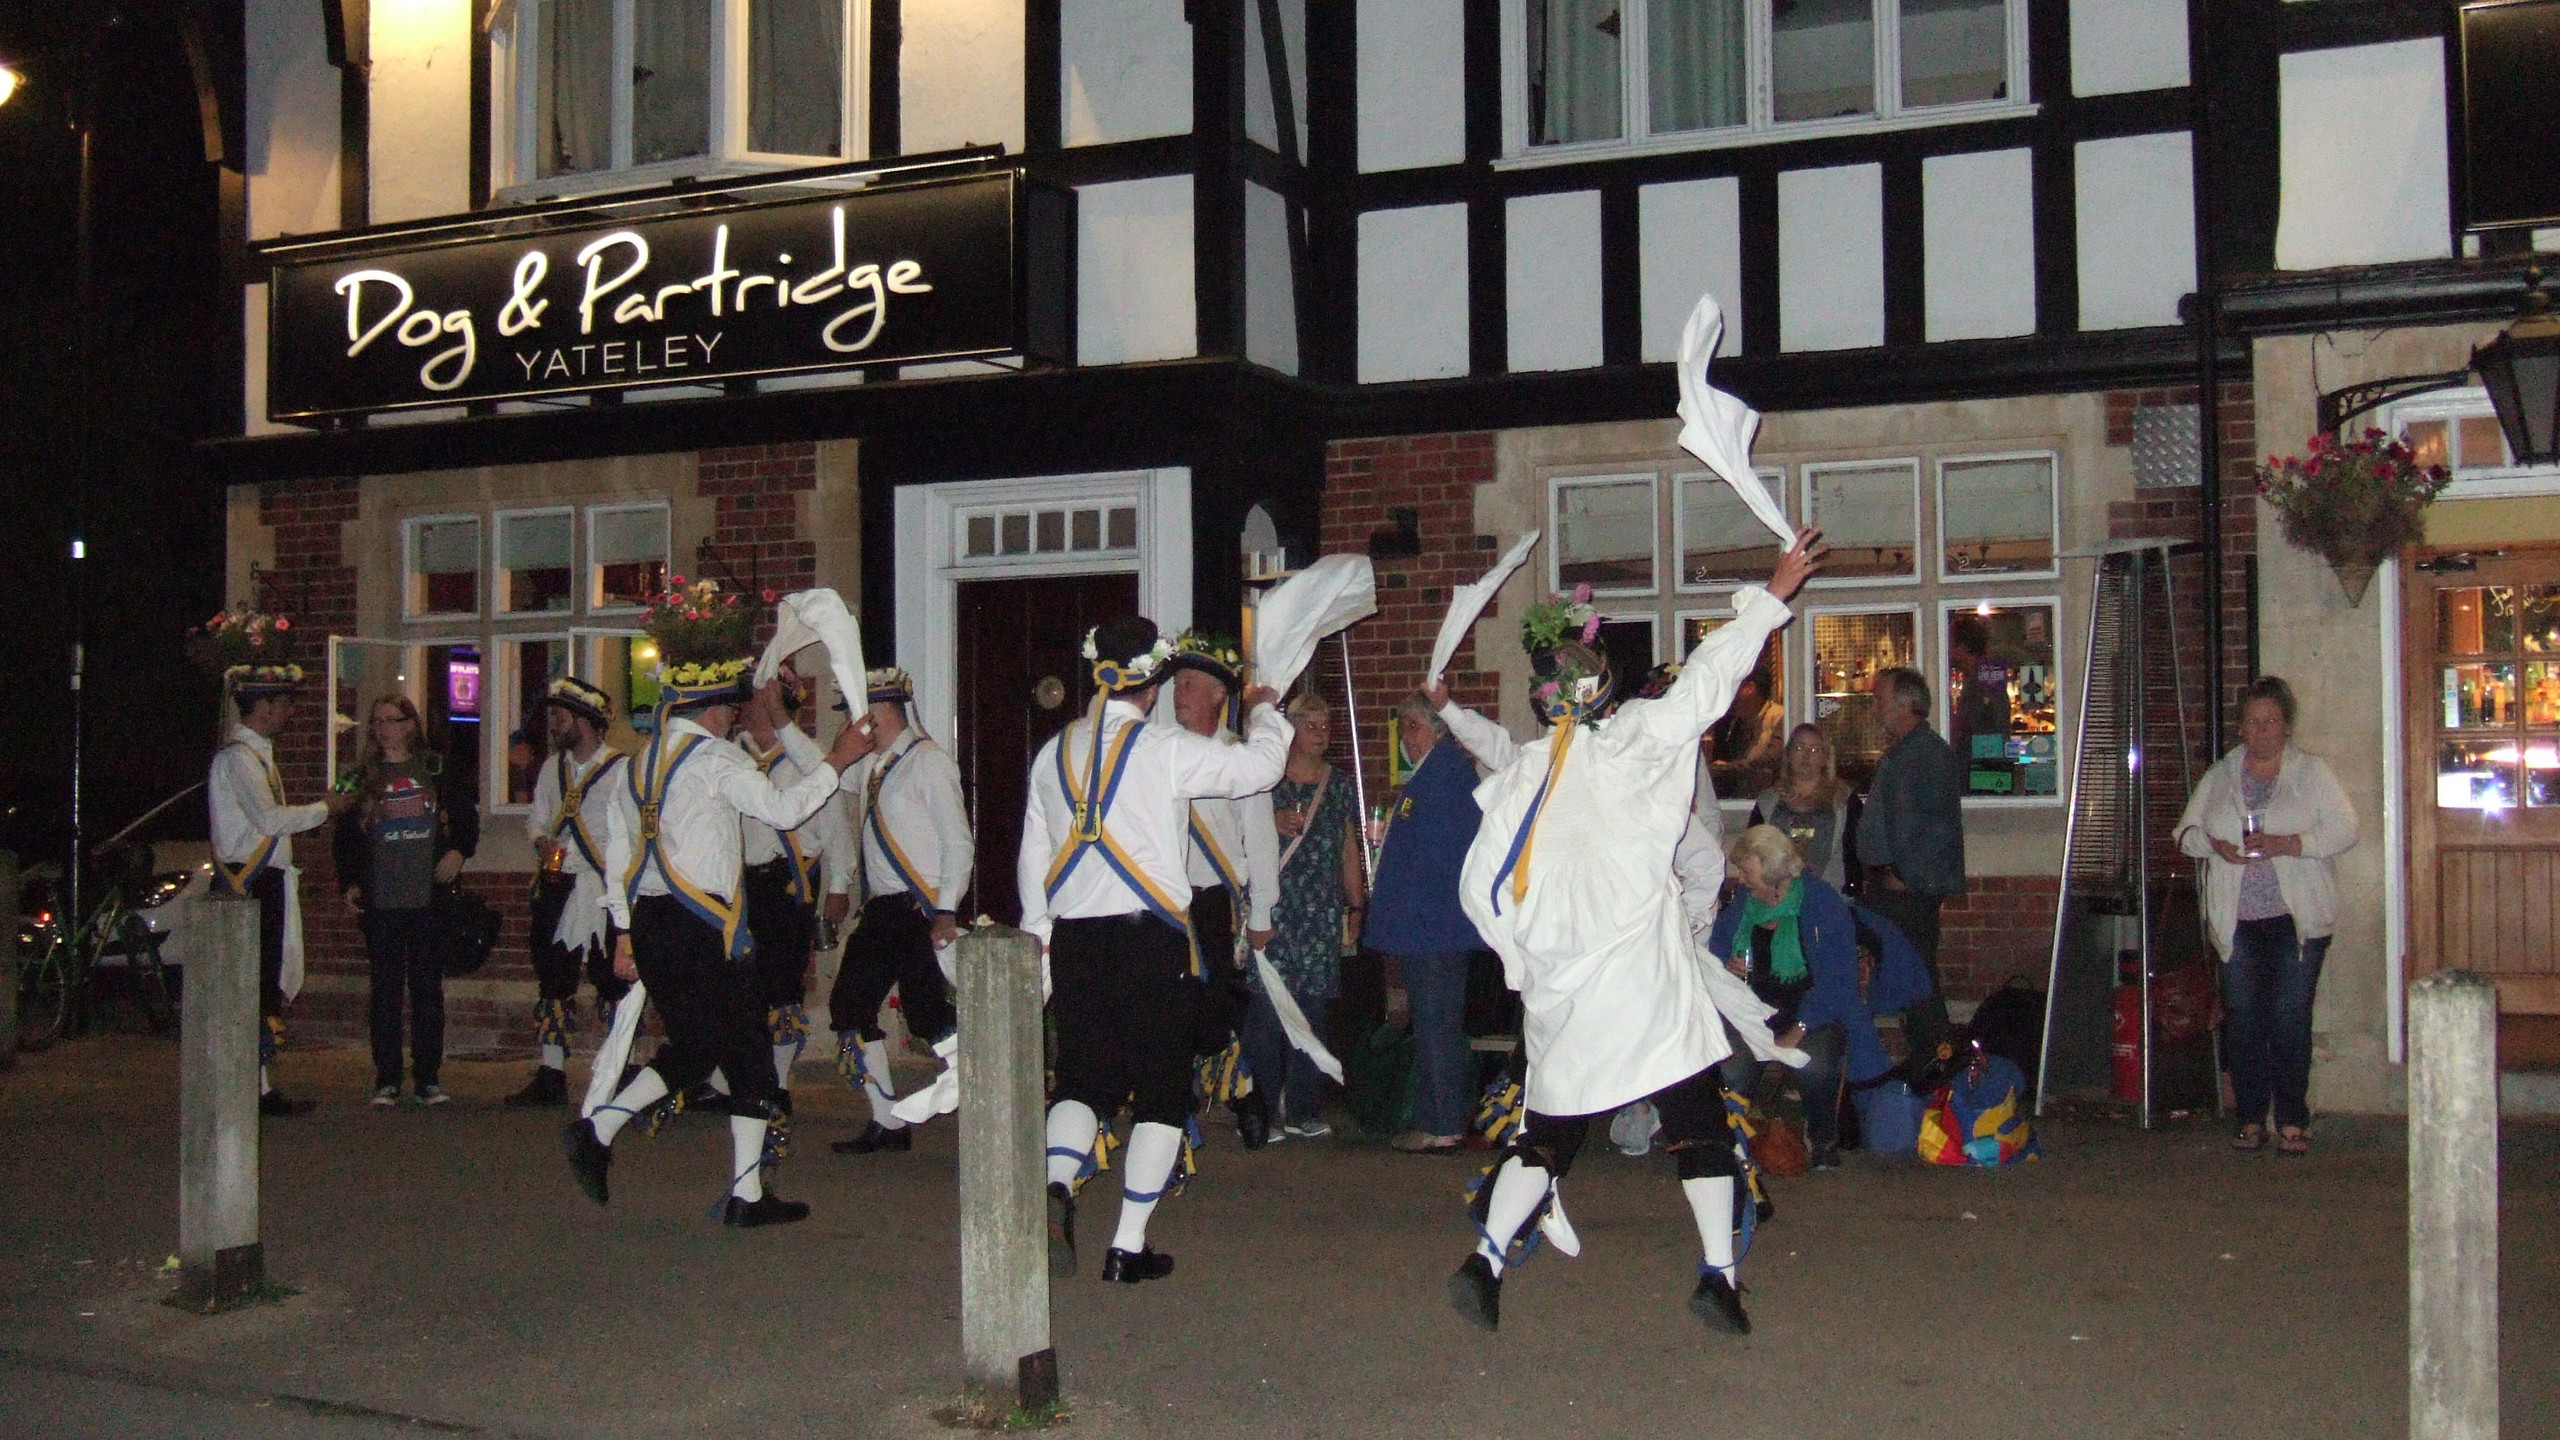 The Yateley Morris Men at The Dog and Pa